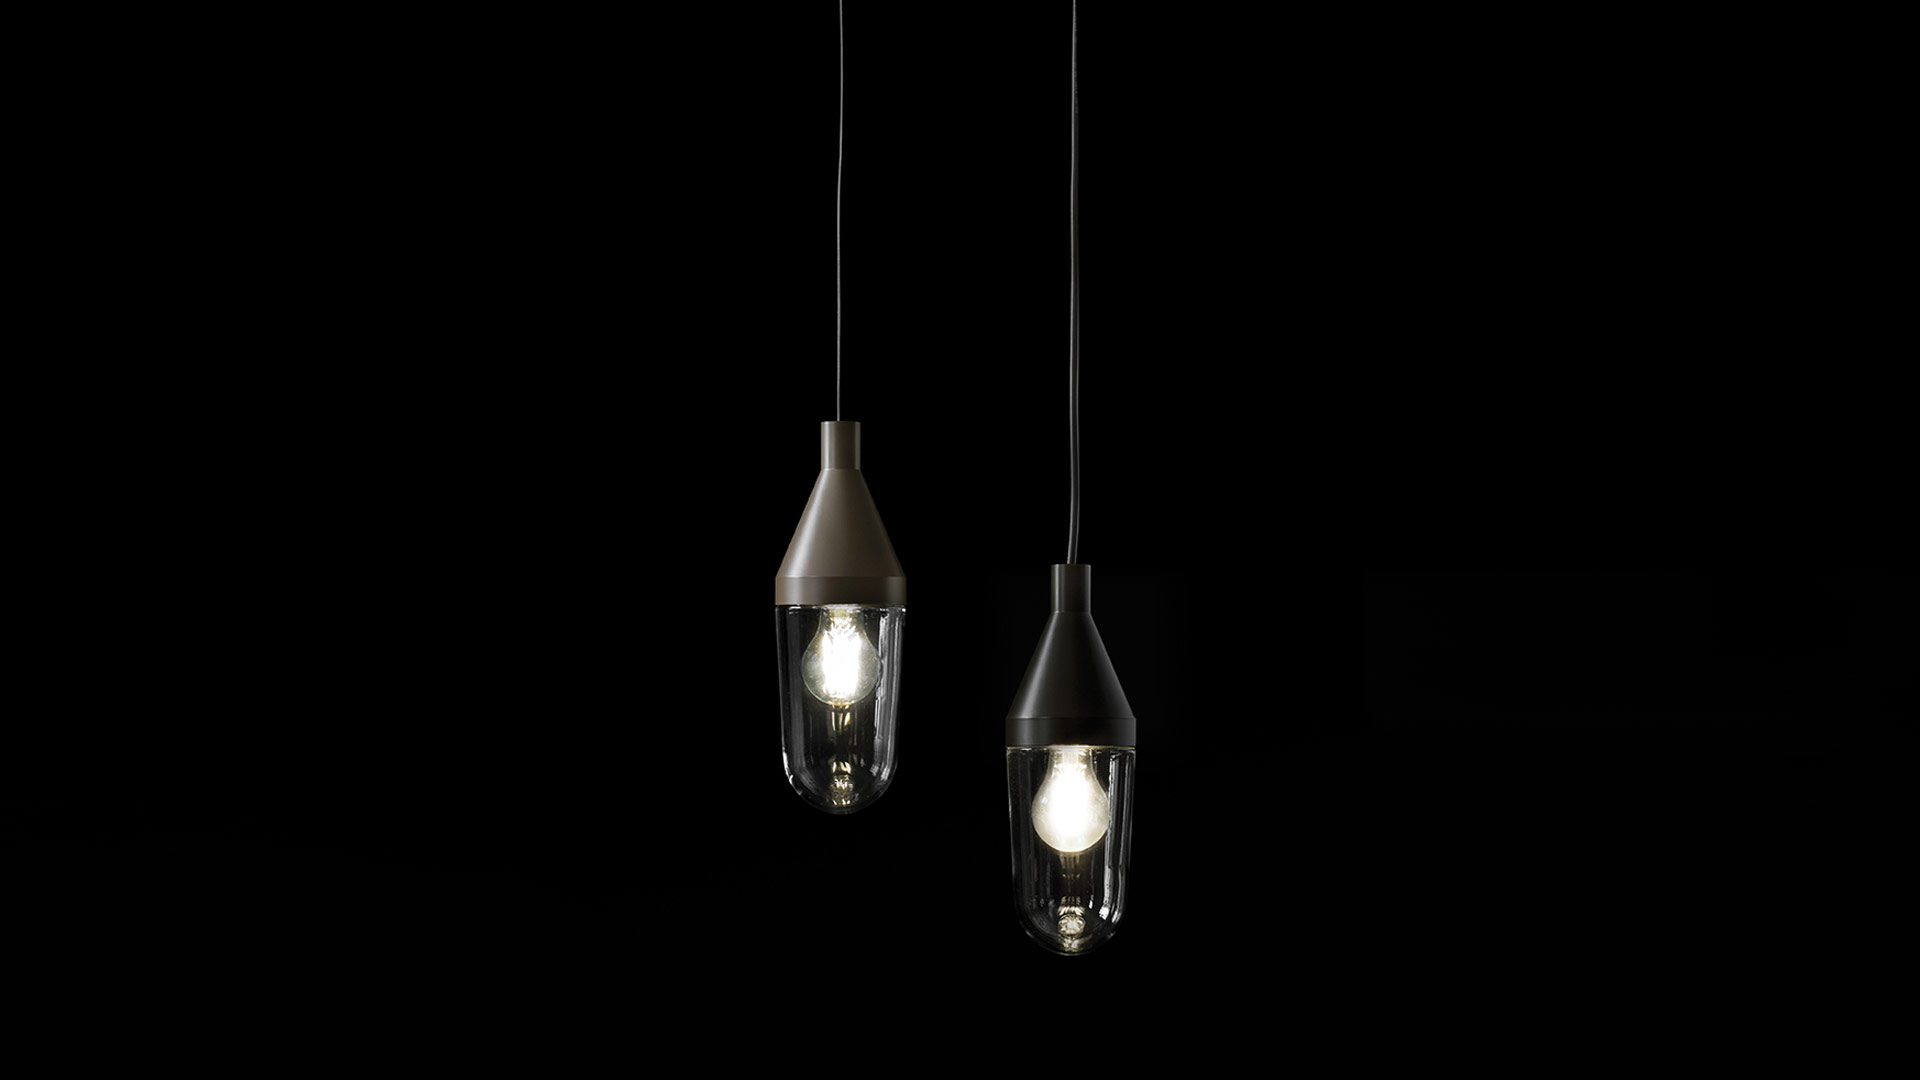 Niwa 1180, 1182 - Design Christophe Pillet